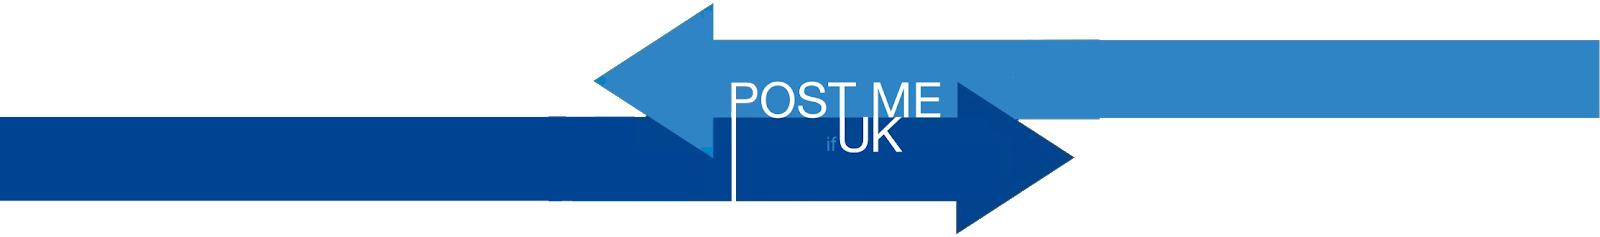 POST ME IF UK